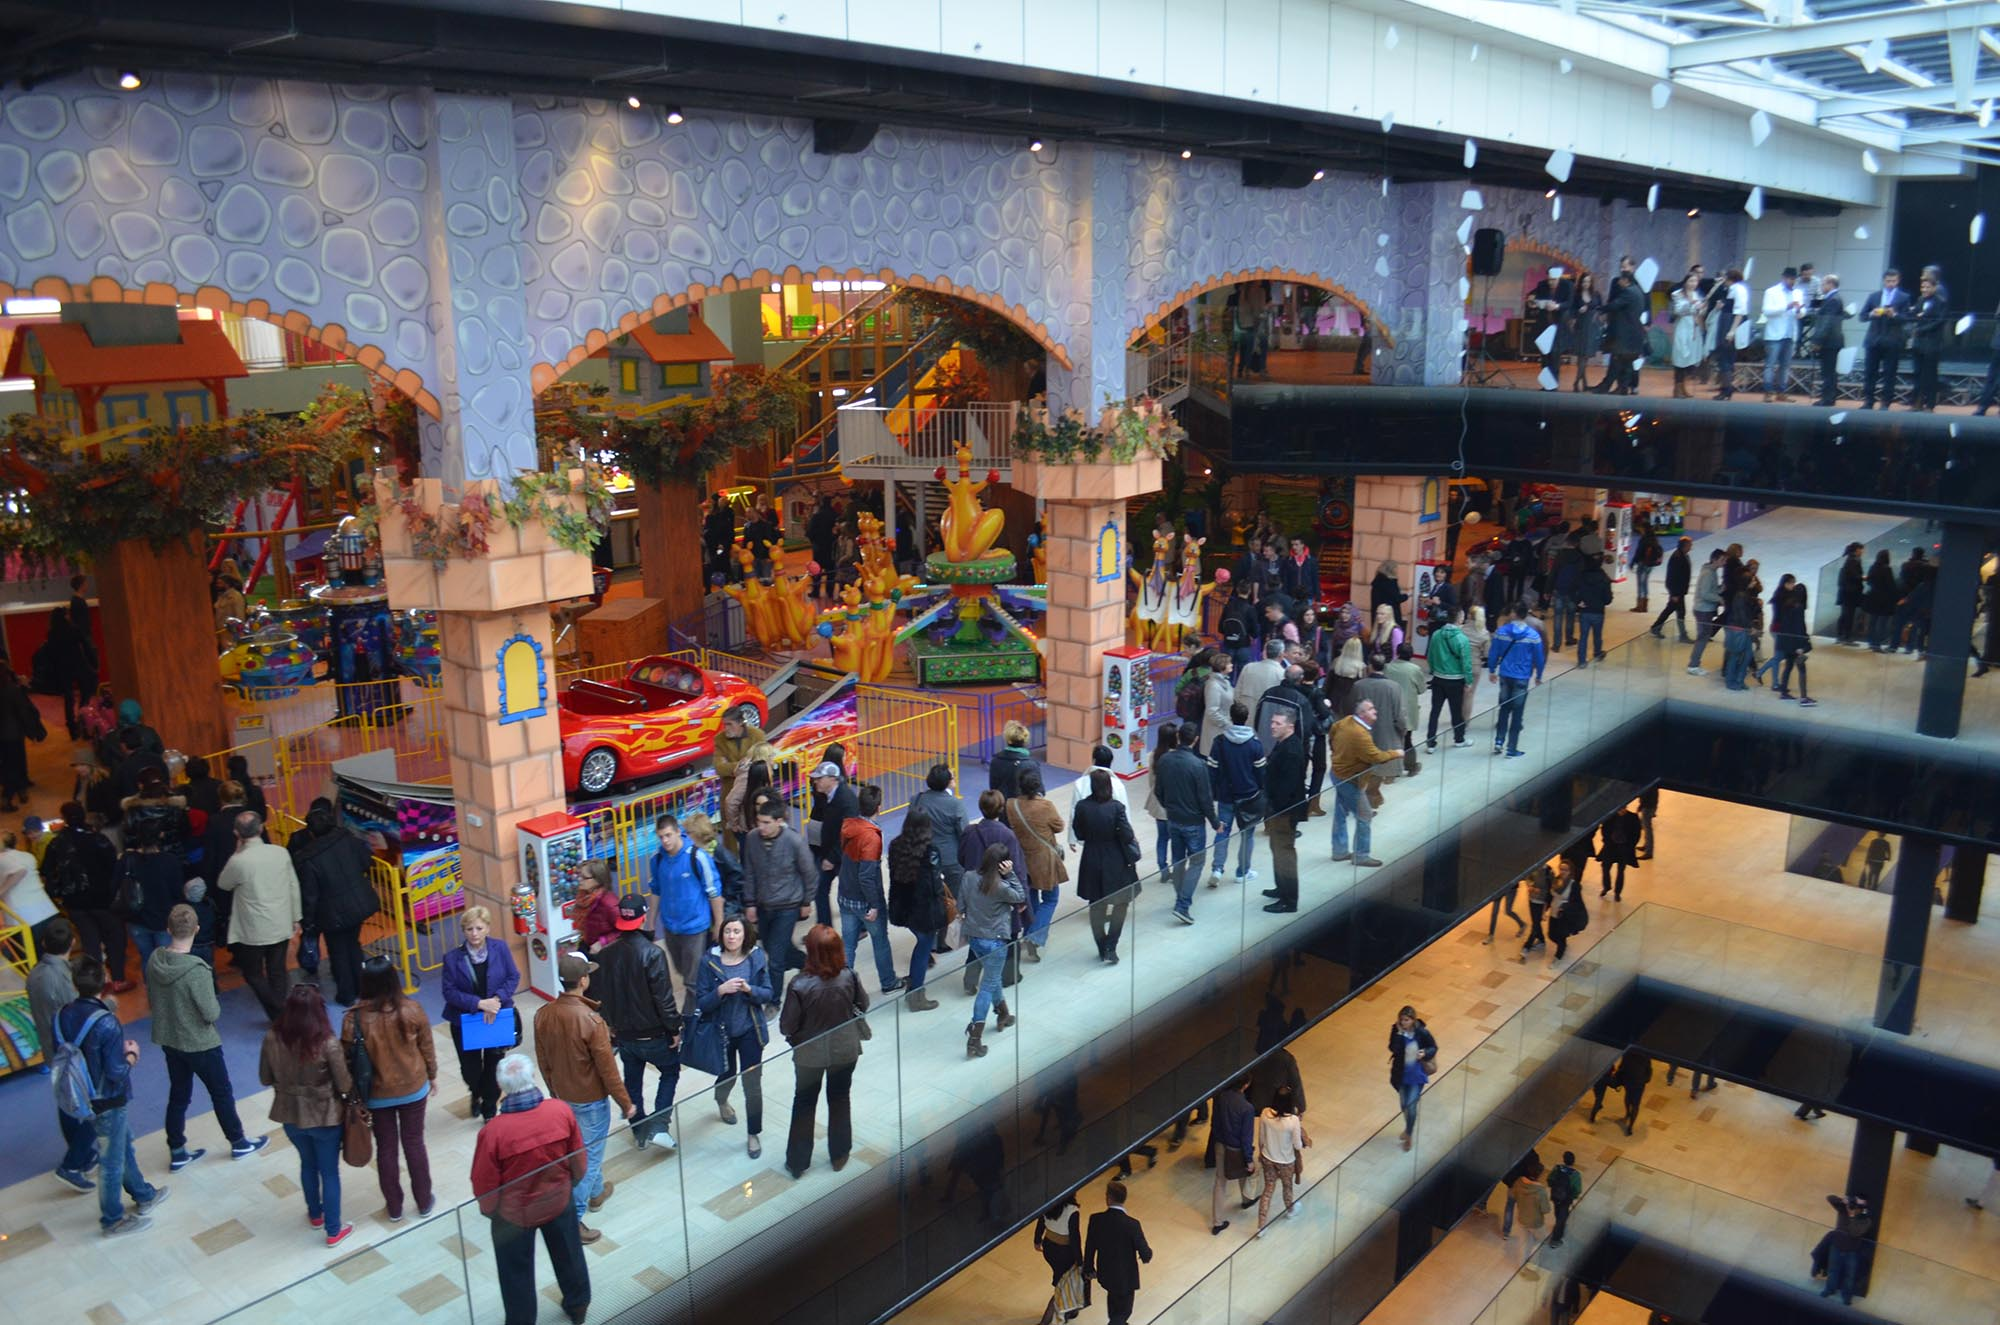 Sarajevo Opens its Doors to New Shopping Mall Amidst Continuing Protests and Citizen Discontent